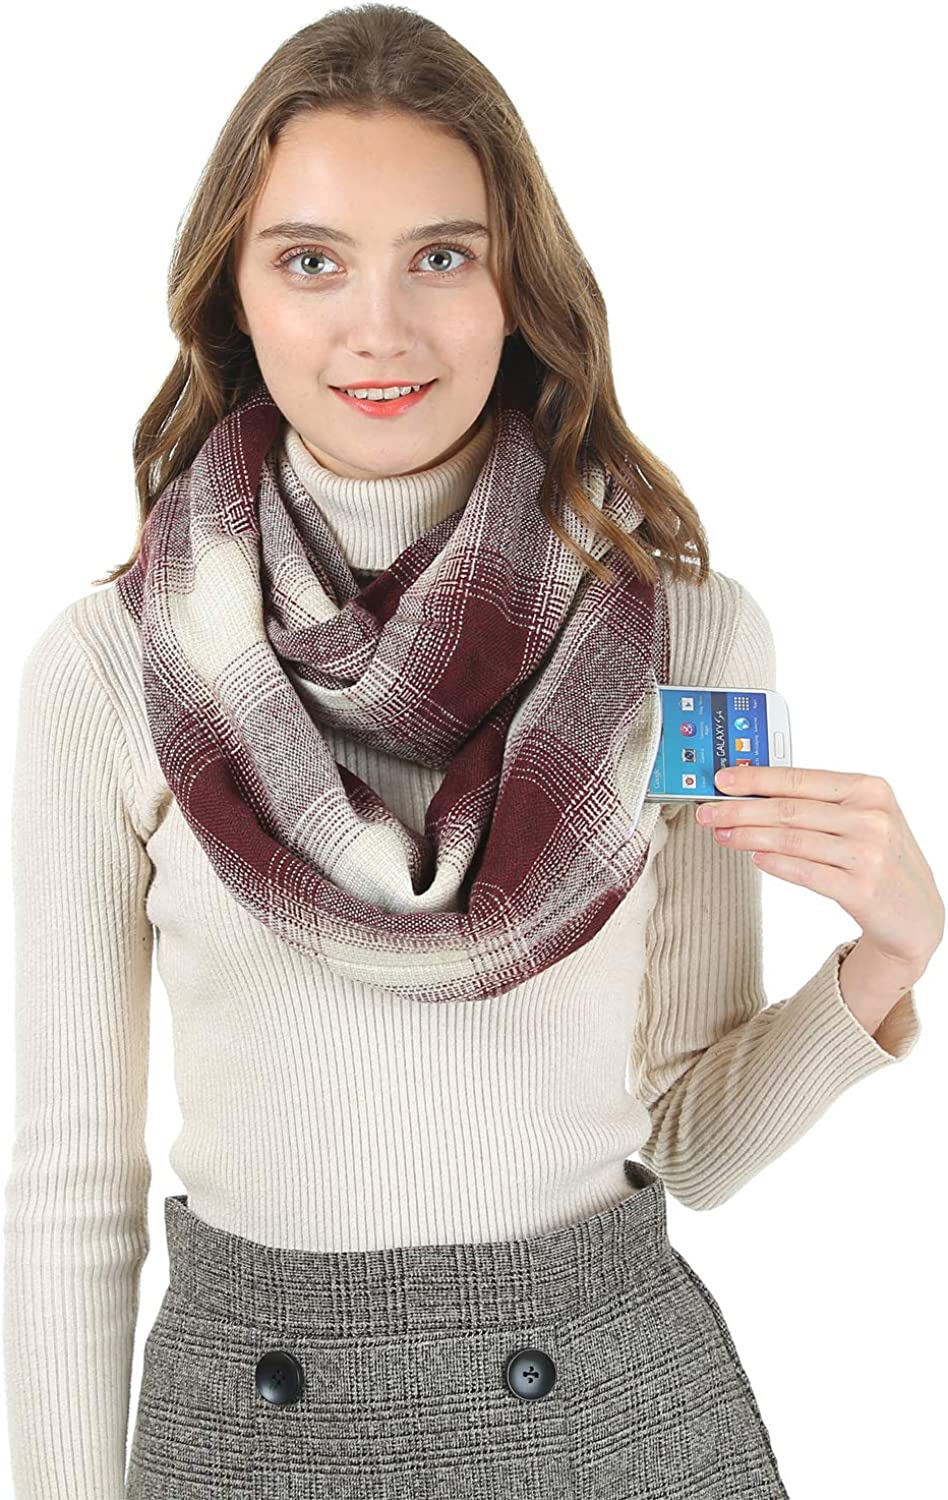 Fashion Infinity Scarves With Zipper Pocket For Women Men - Novelty Wrap Travel Scarf with Hidden Pocket